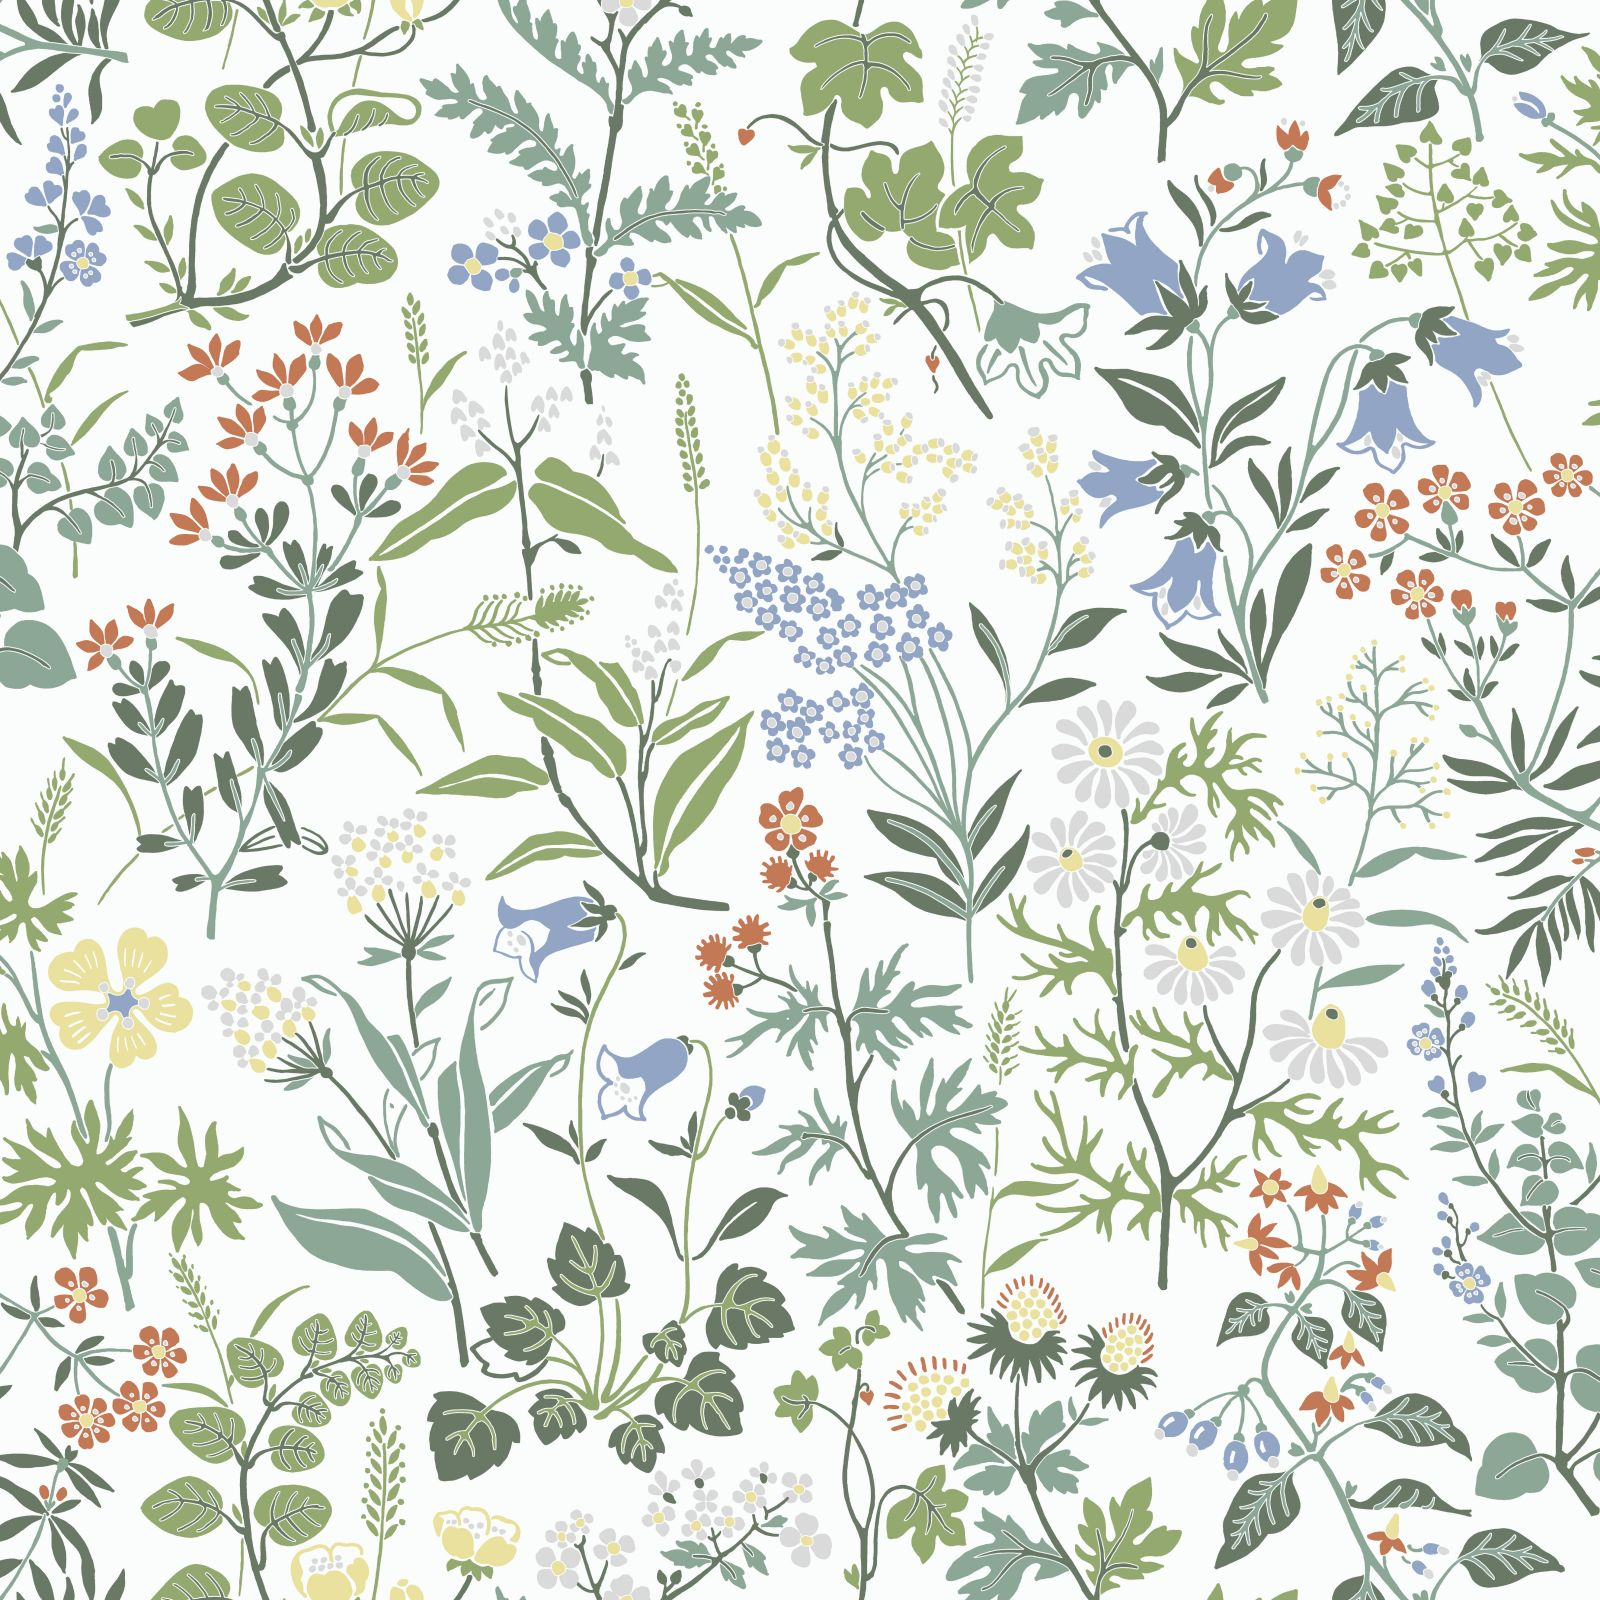 Morris Inspired Floral Wallpaper Flowered And Botanical Papers